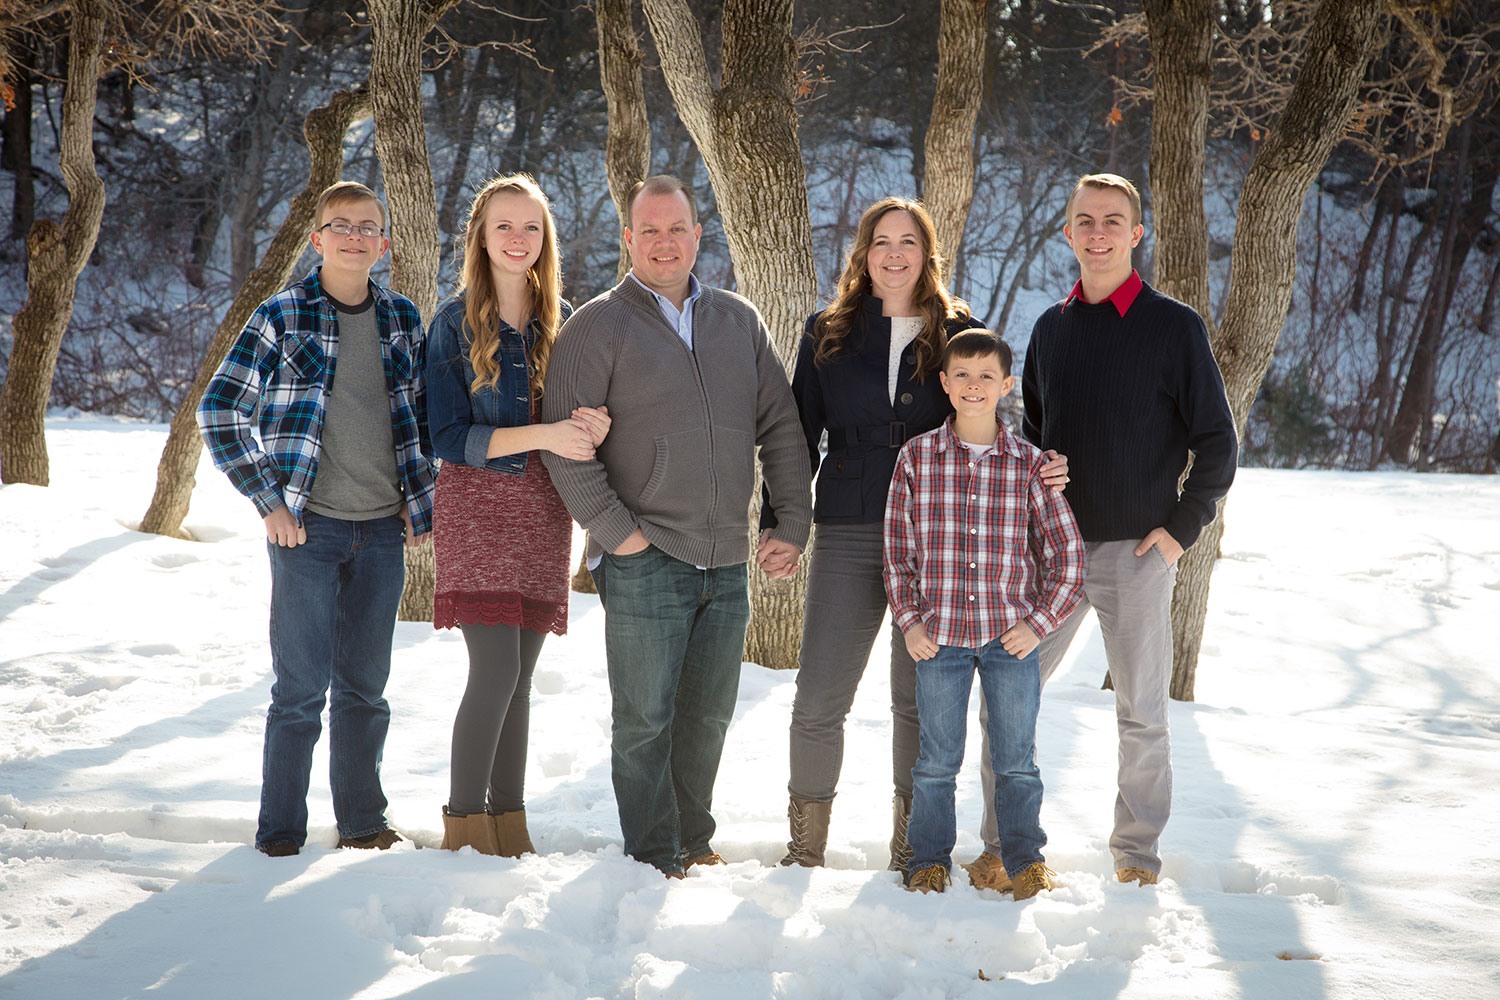 Family Portraits - Masterpiece Images - Professional ...